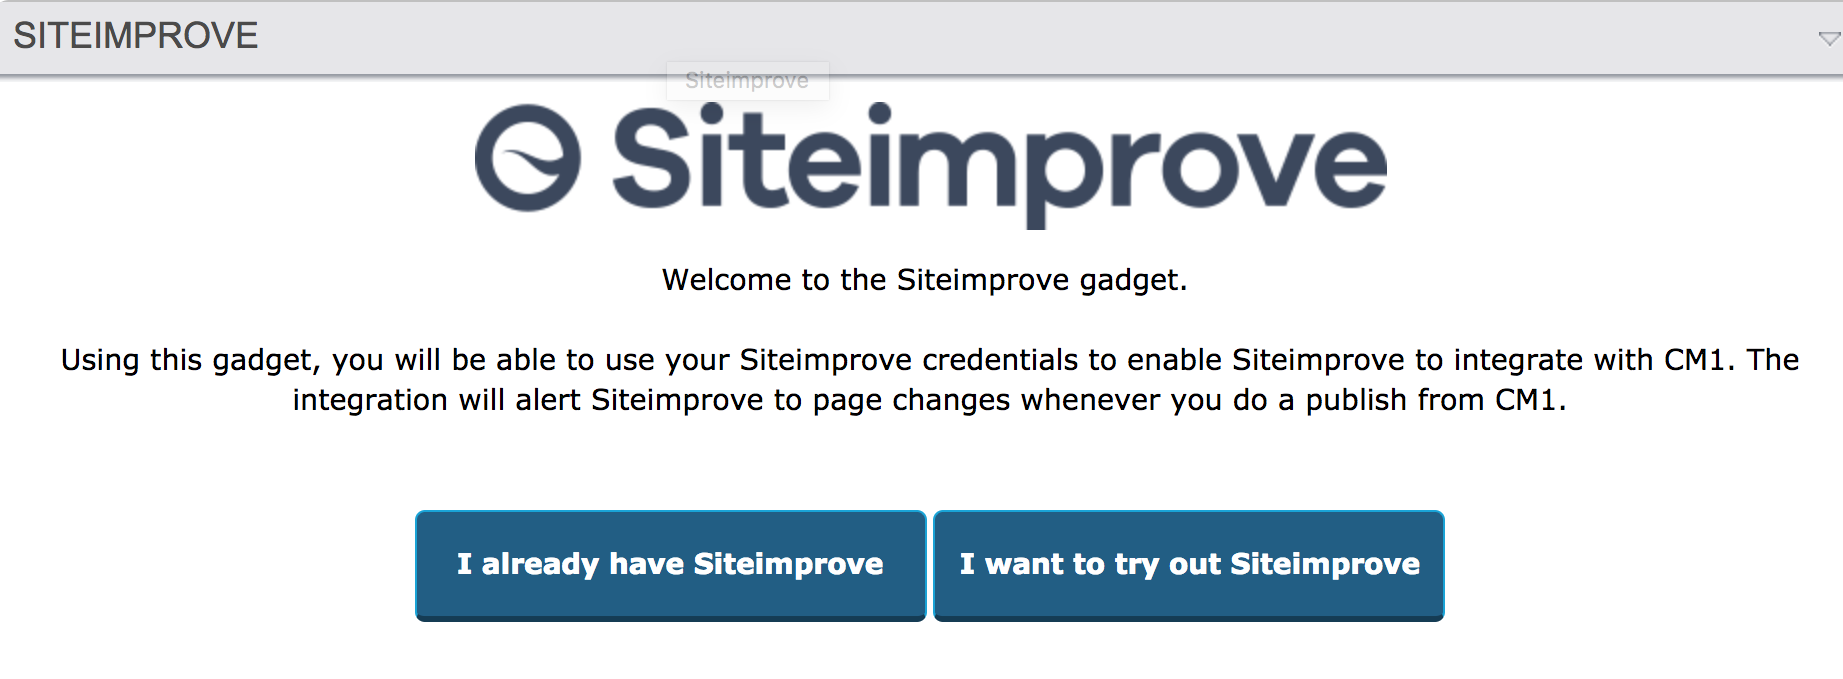 Screenshot of the Siteimprove Gadget